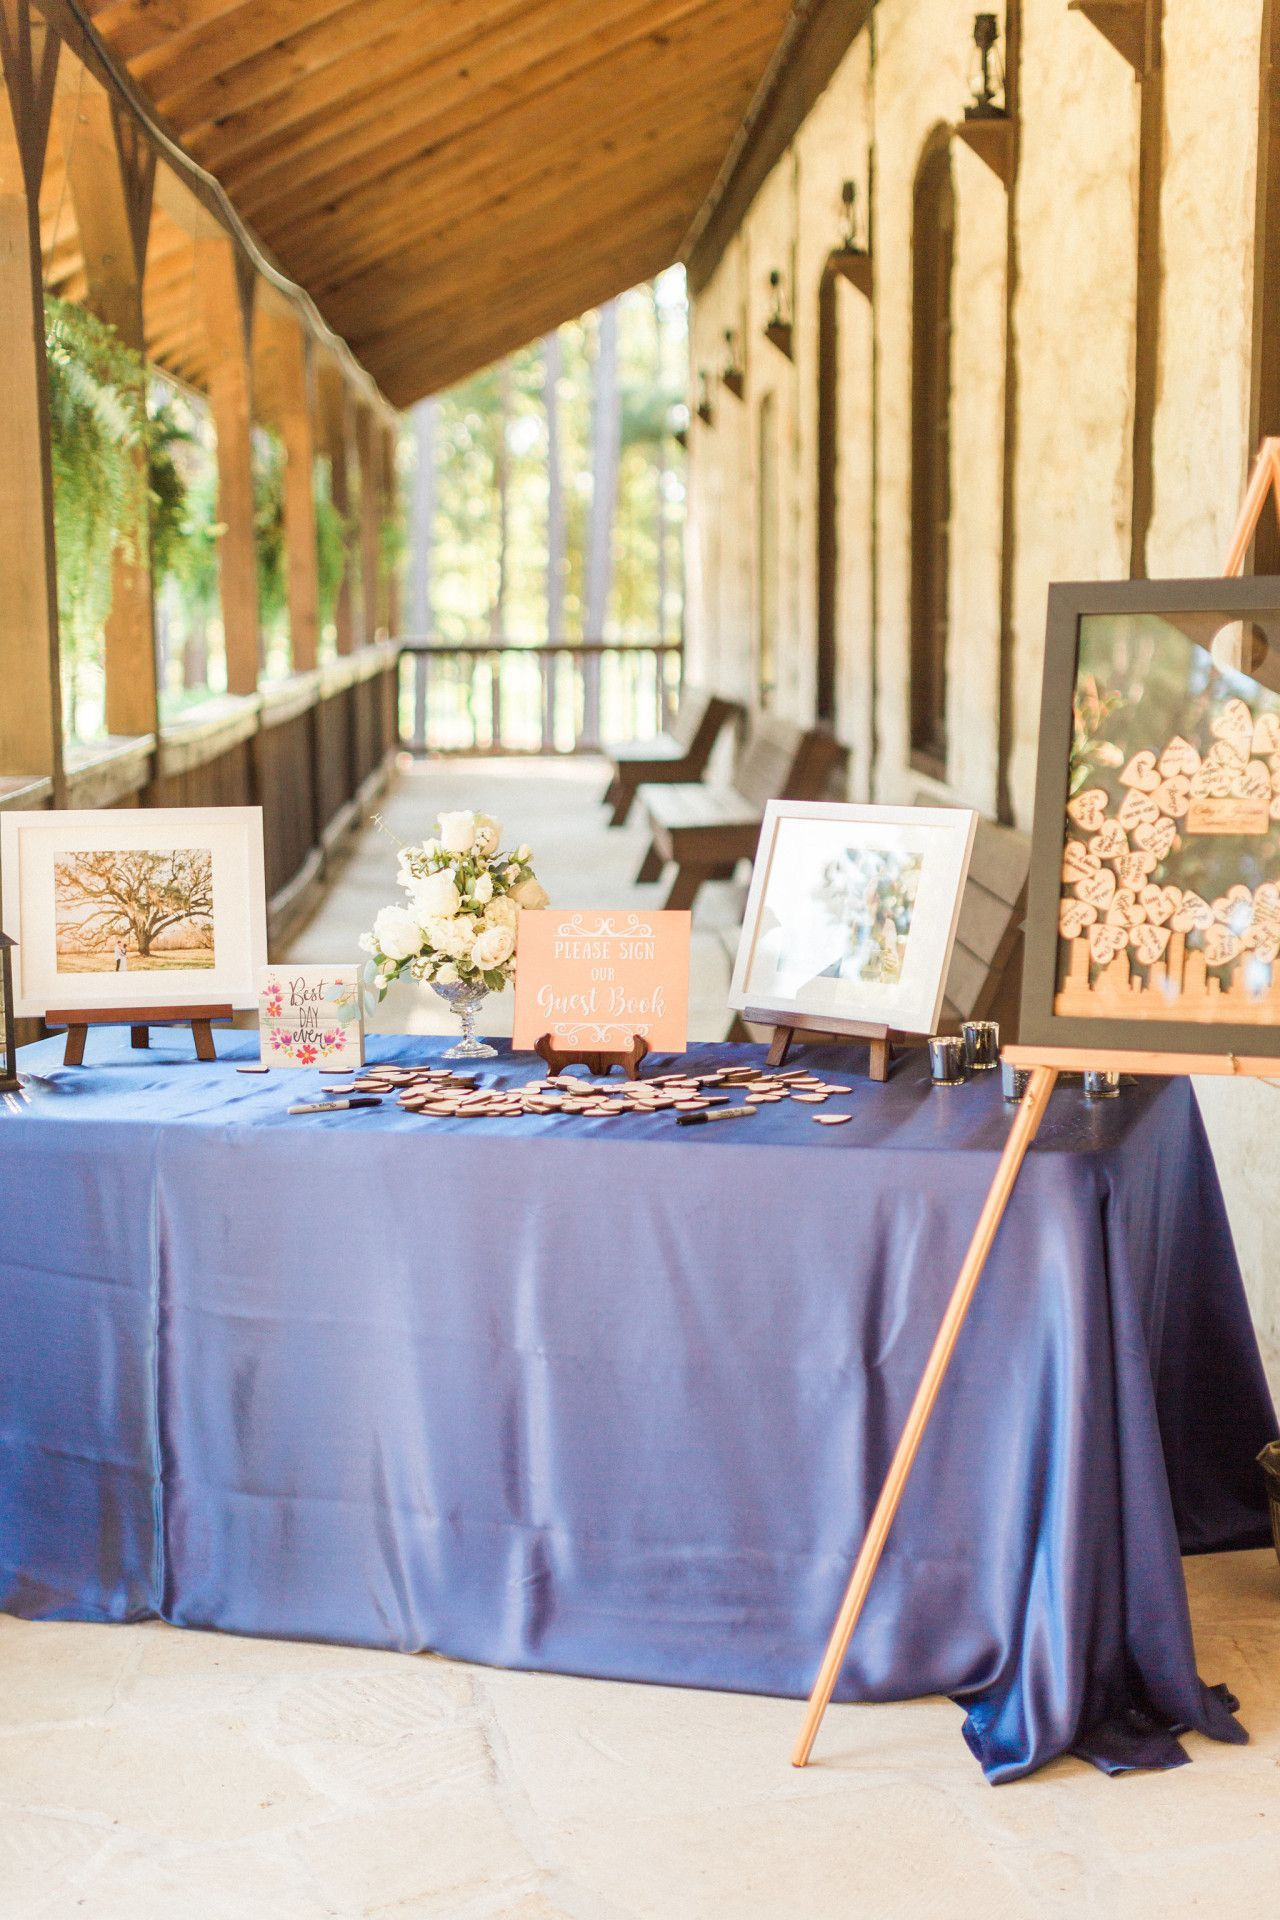 Wedding decoration ideas blue and white  wedding guest book welcome table  modern rustic wedding decorations